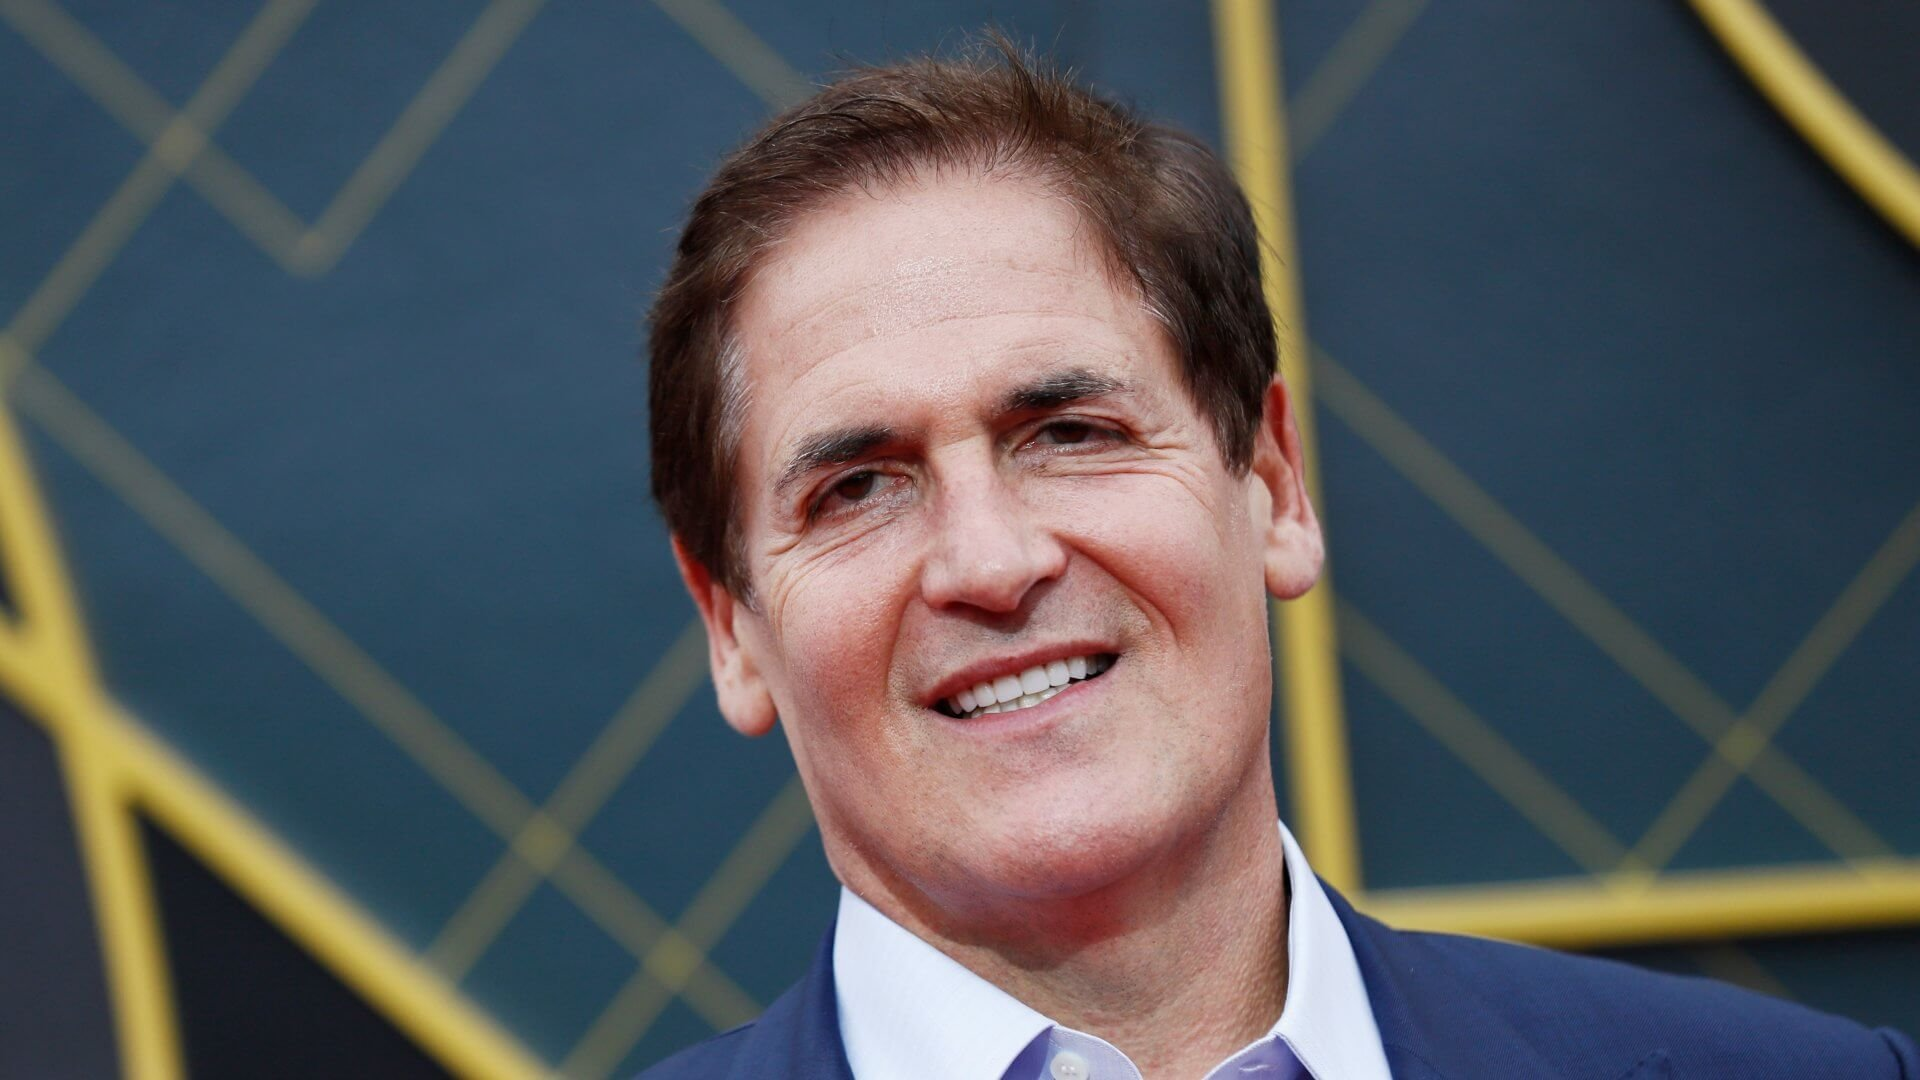 Where Do Mark Cuban and These Other Big Names Get Their Money Advice? Dad